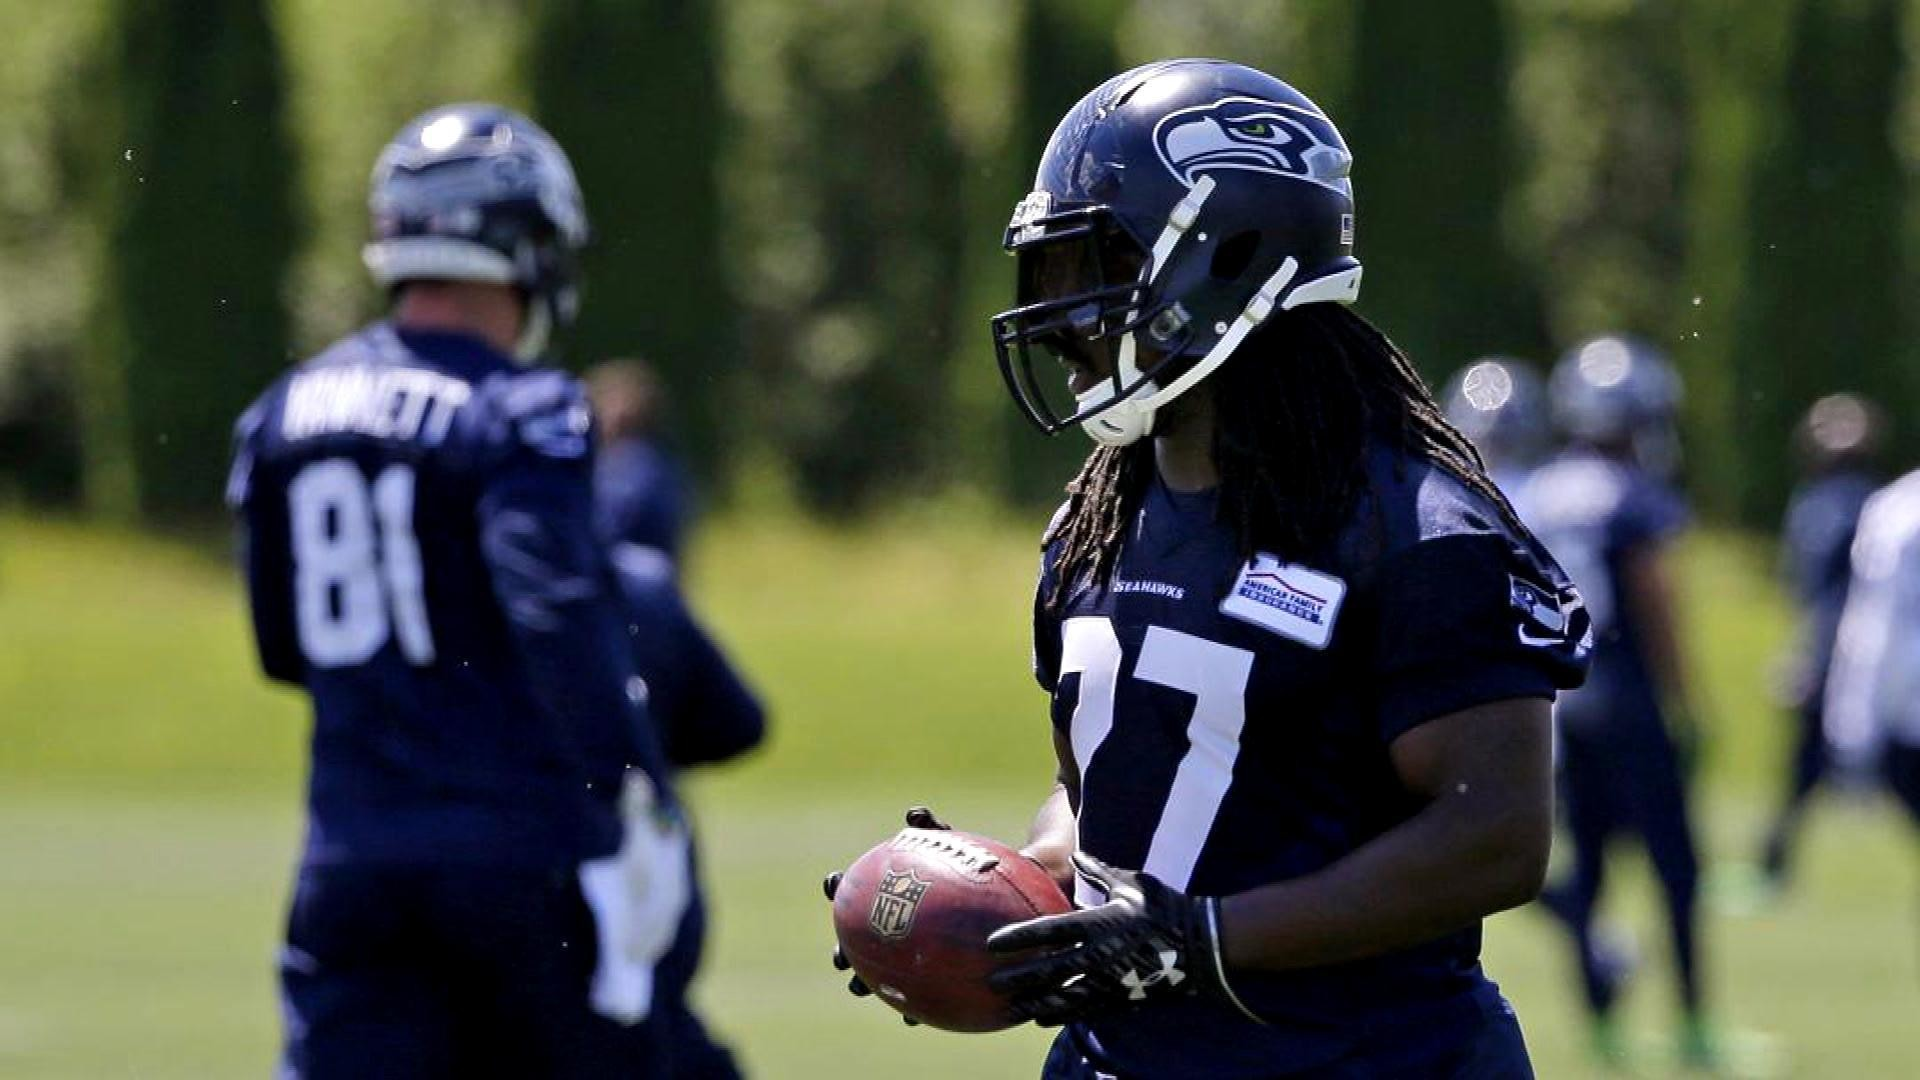 1920x1080 Seahawks creating problems with Eddie Lacy's weight incentives | NBC Sports